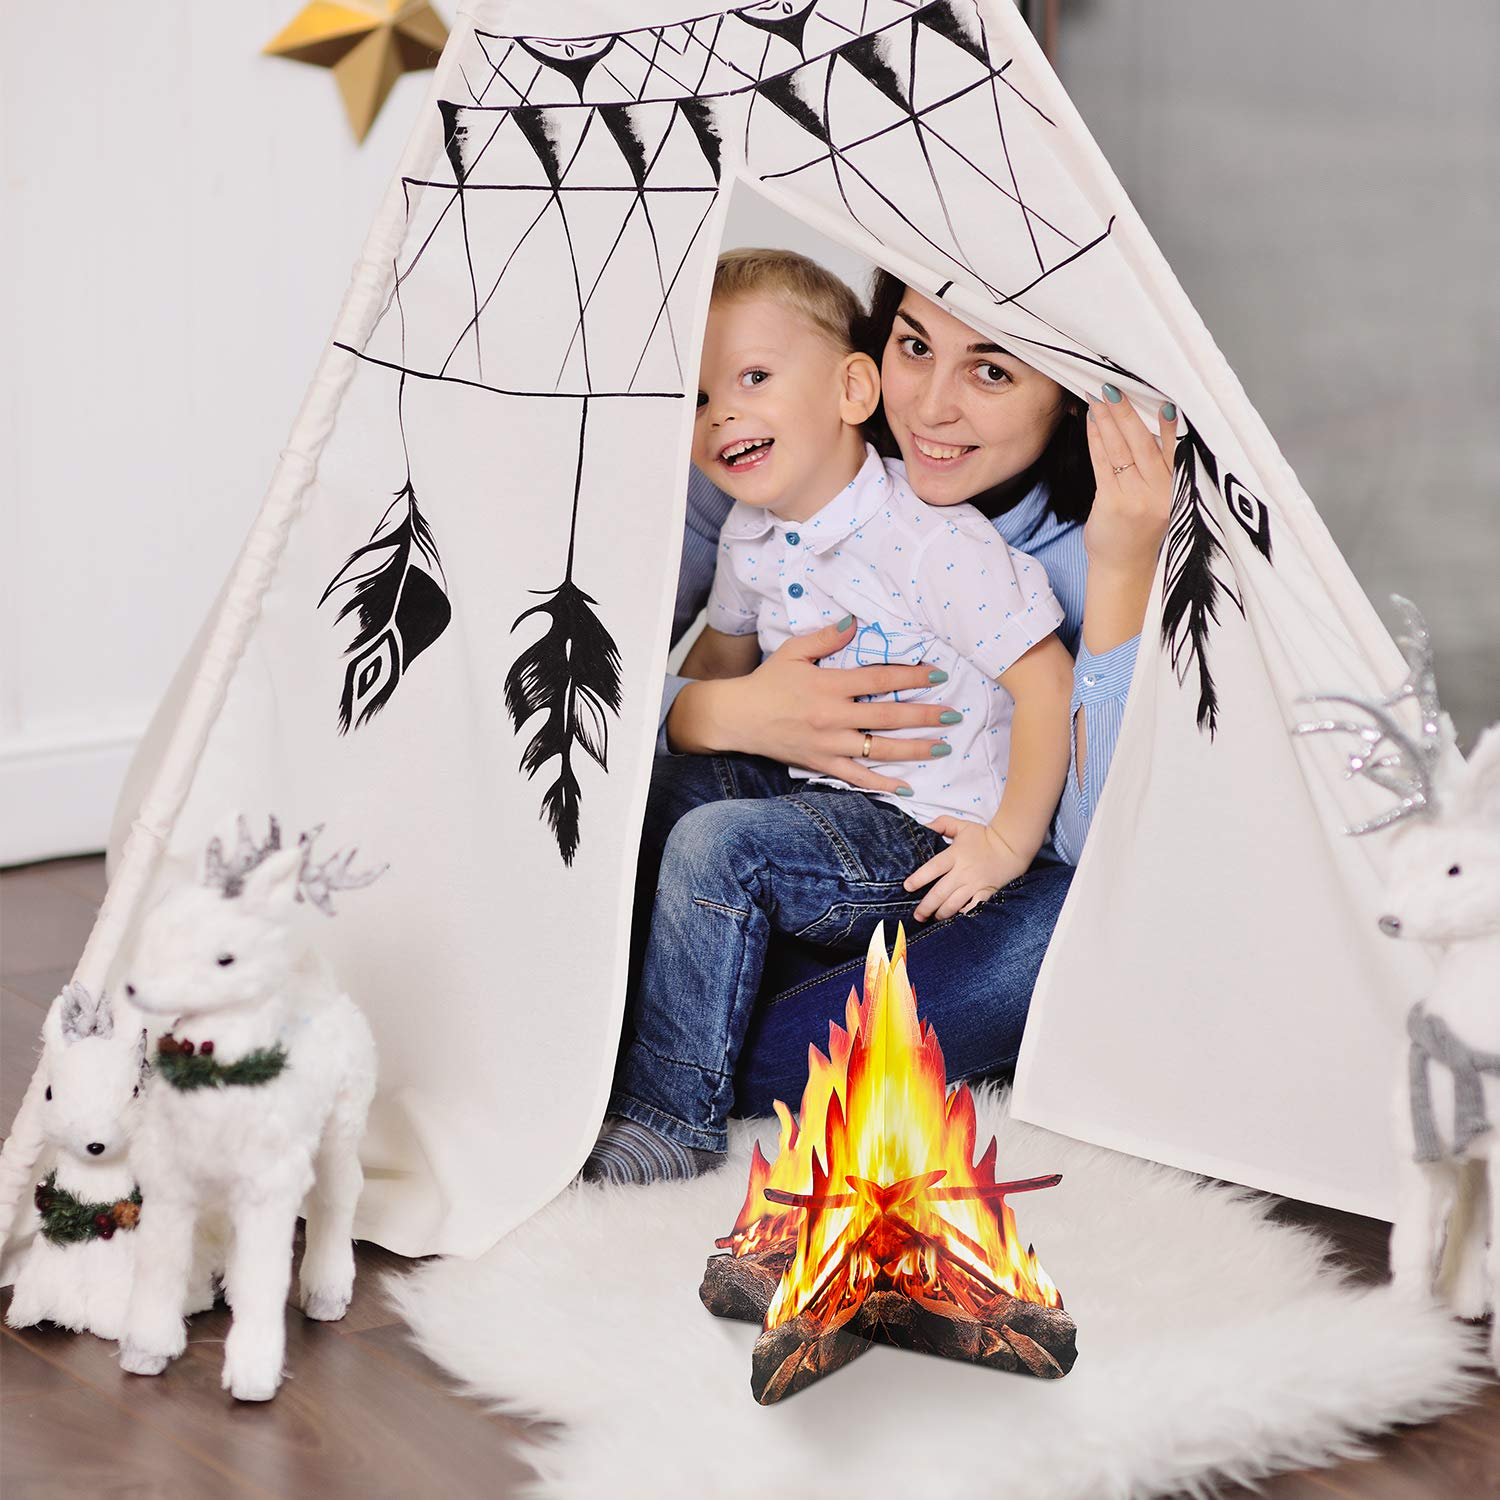 2 Sets 12 Inch Tall Artificial Fire Fake Flame Paper 3D Decorative Cardboard Campfire Centerpiece Flame Torch for Campfire Party Decorations